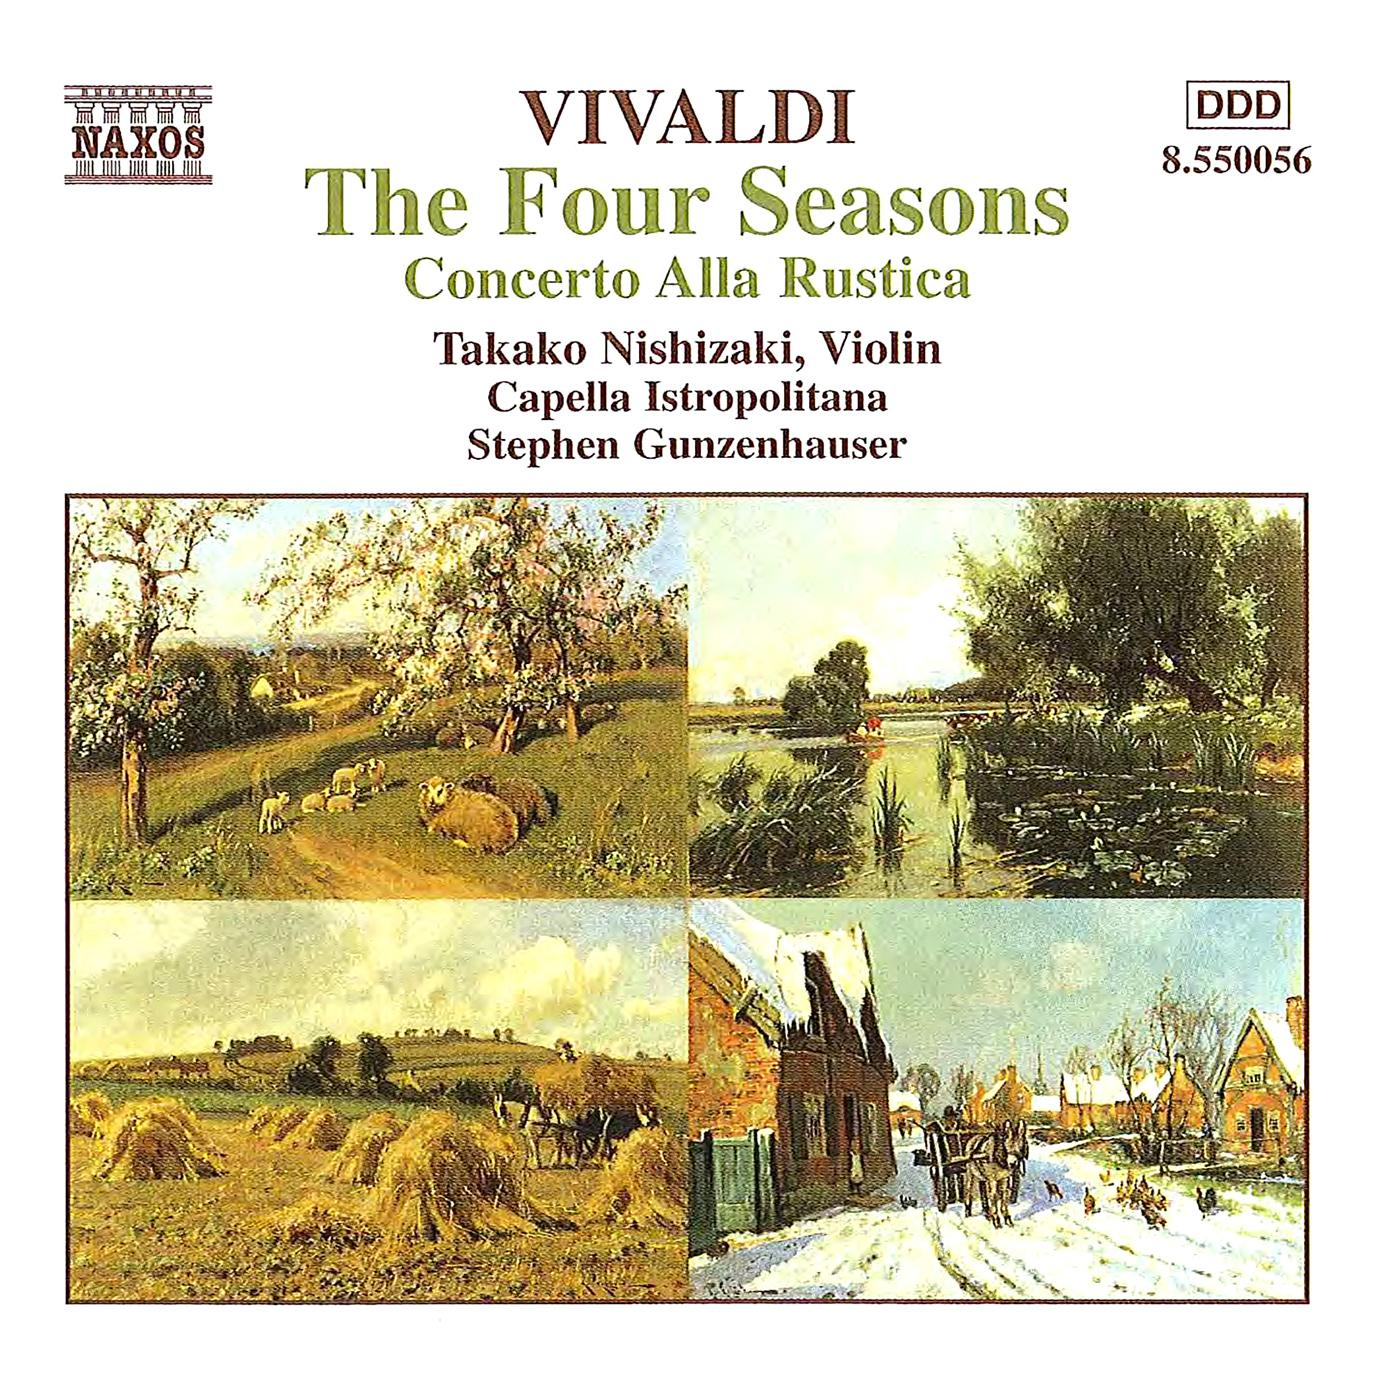 vivaldi and the four seasons